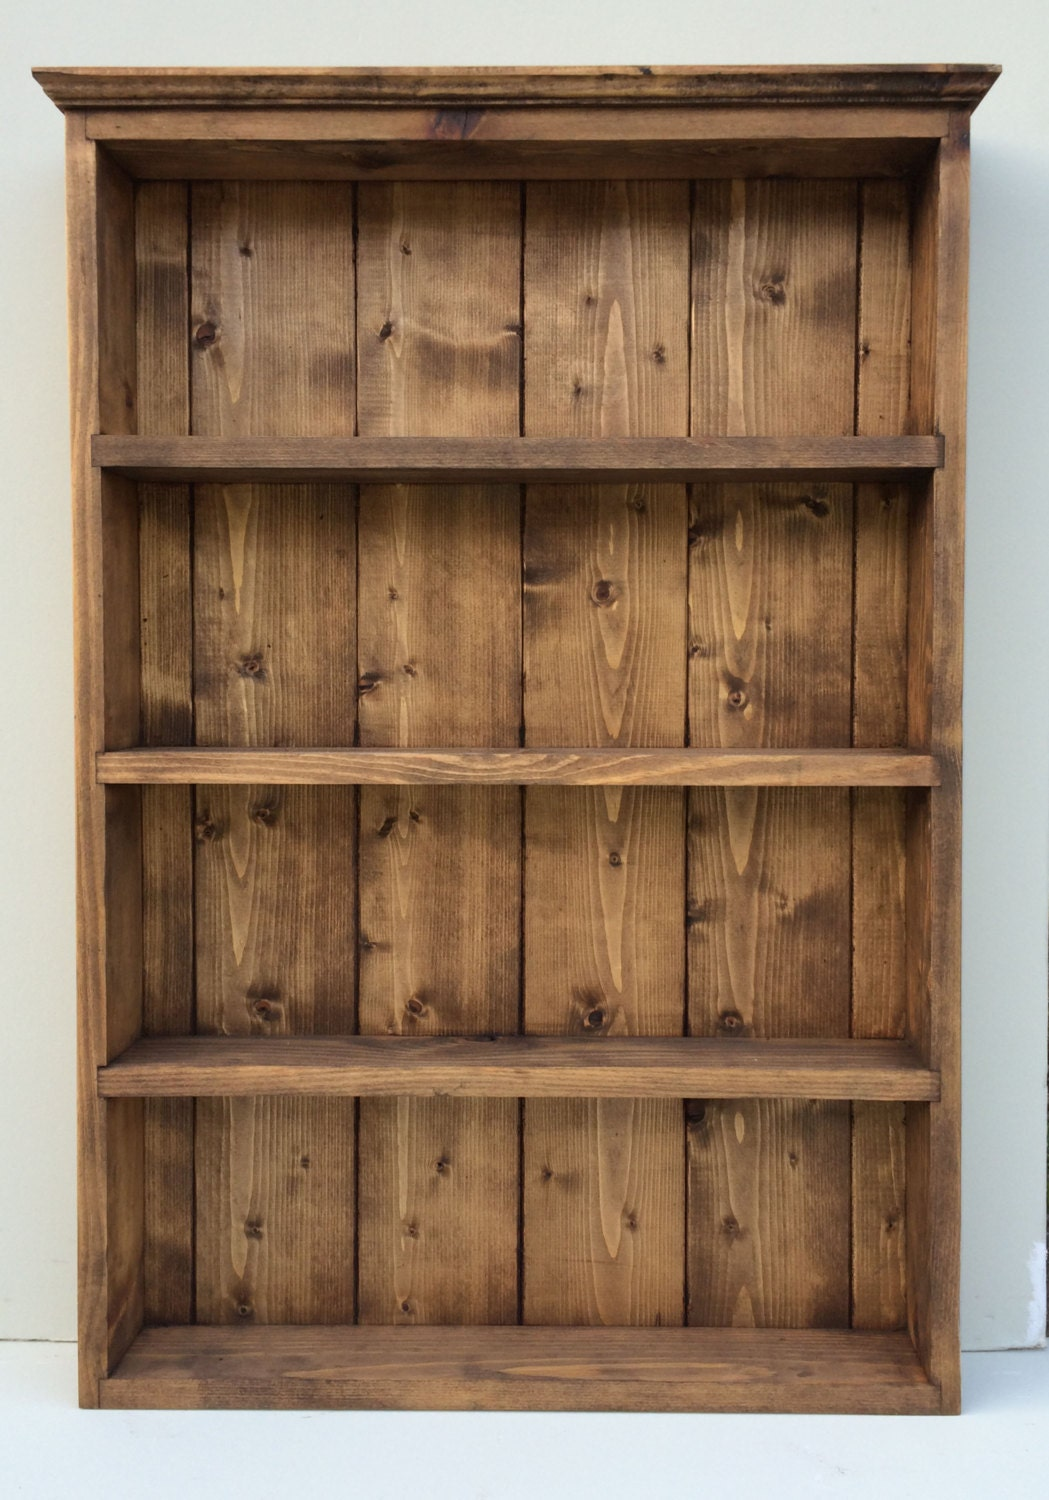 Rustic handmade spice rack organiser wall by silverapplewood for Spice cabinet ideas